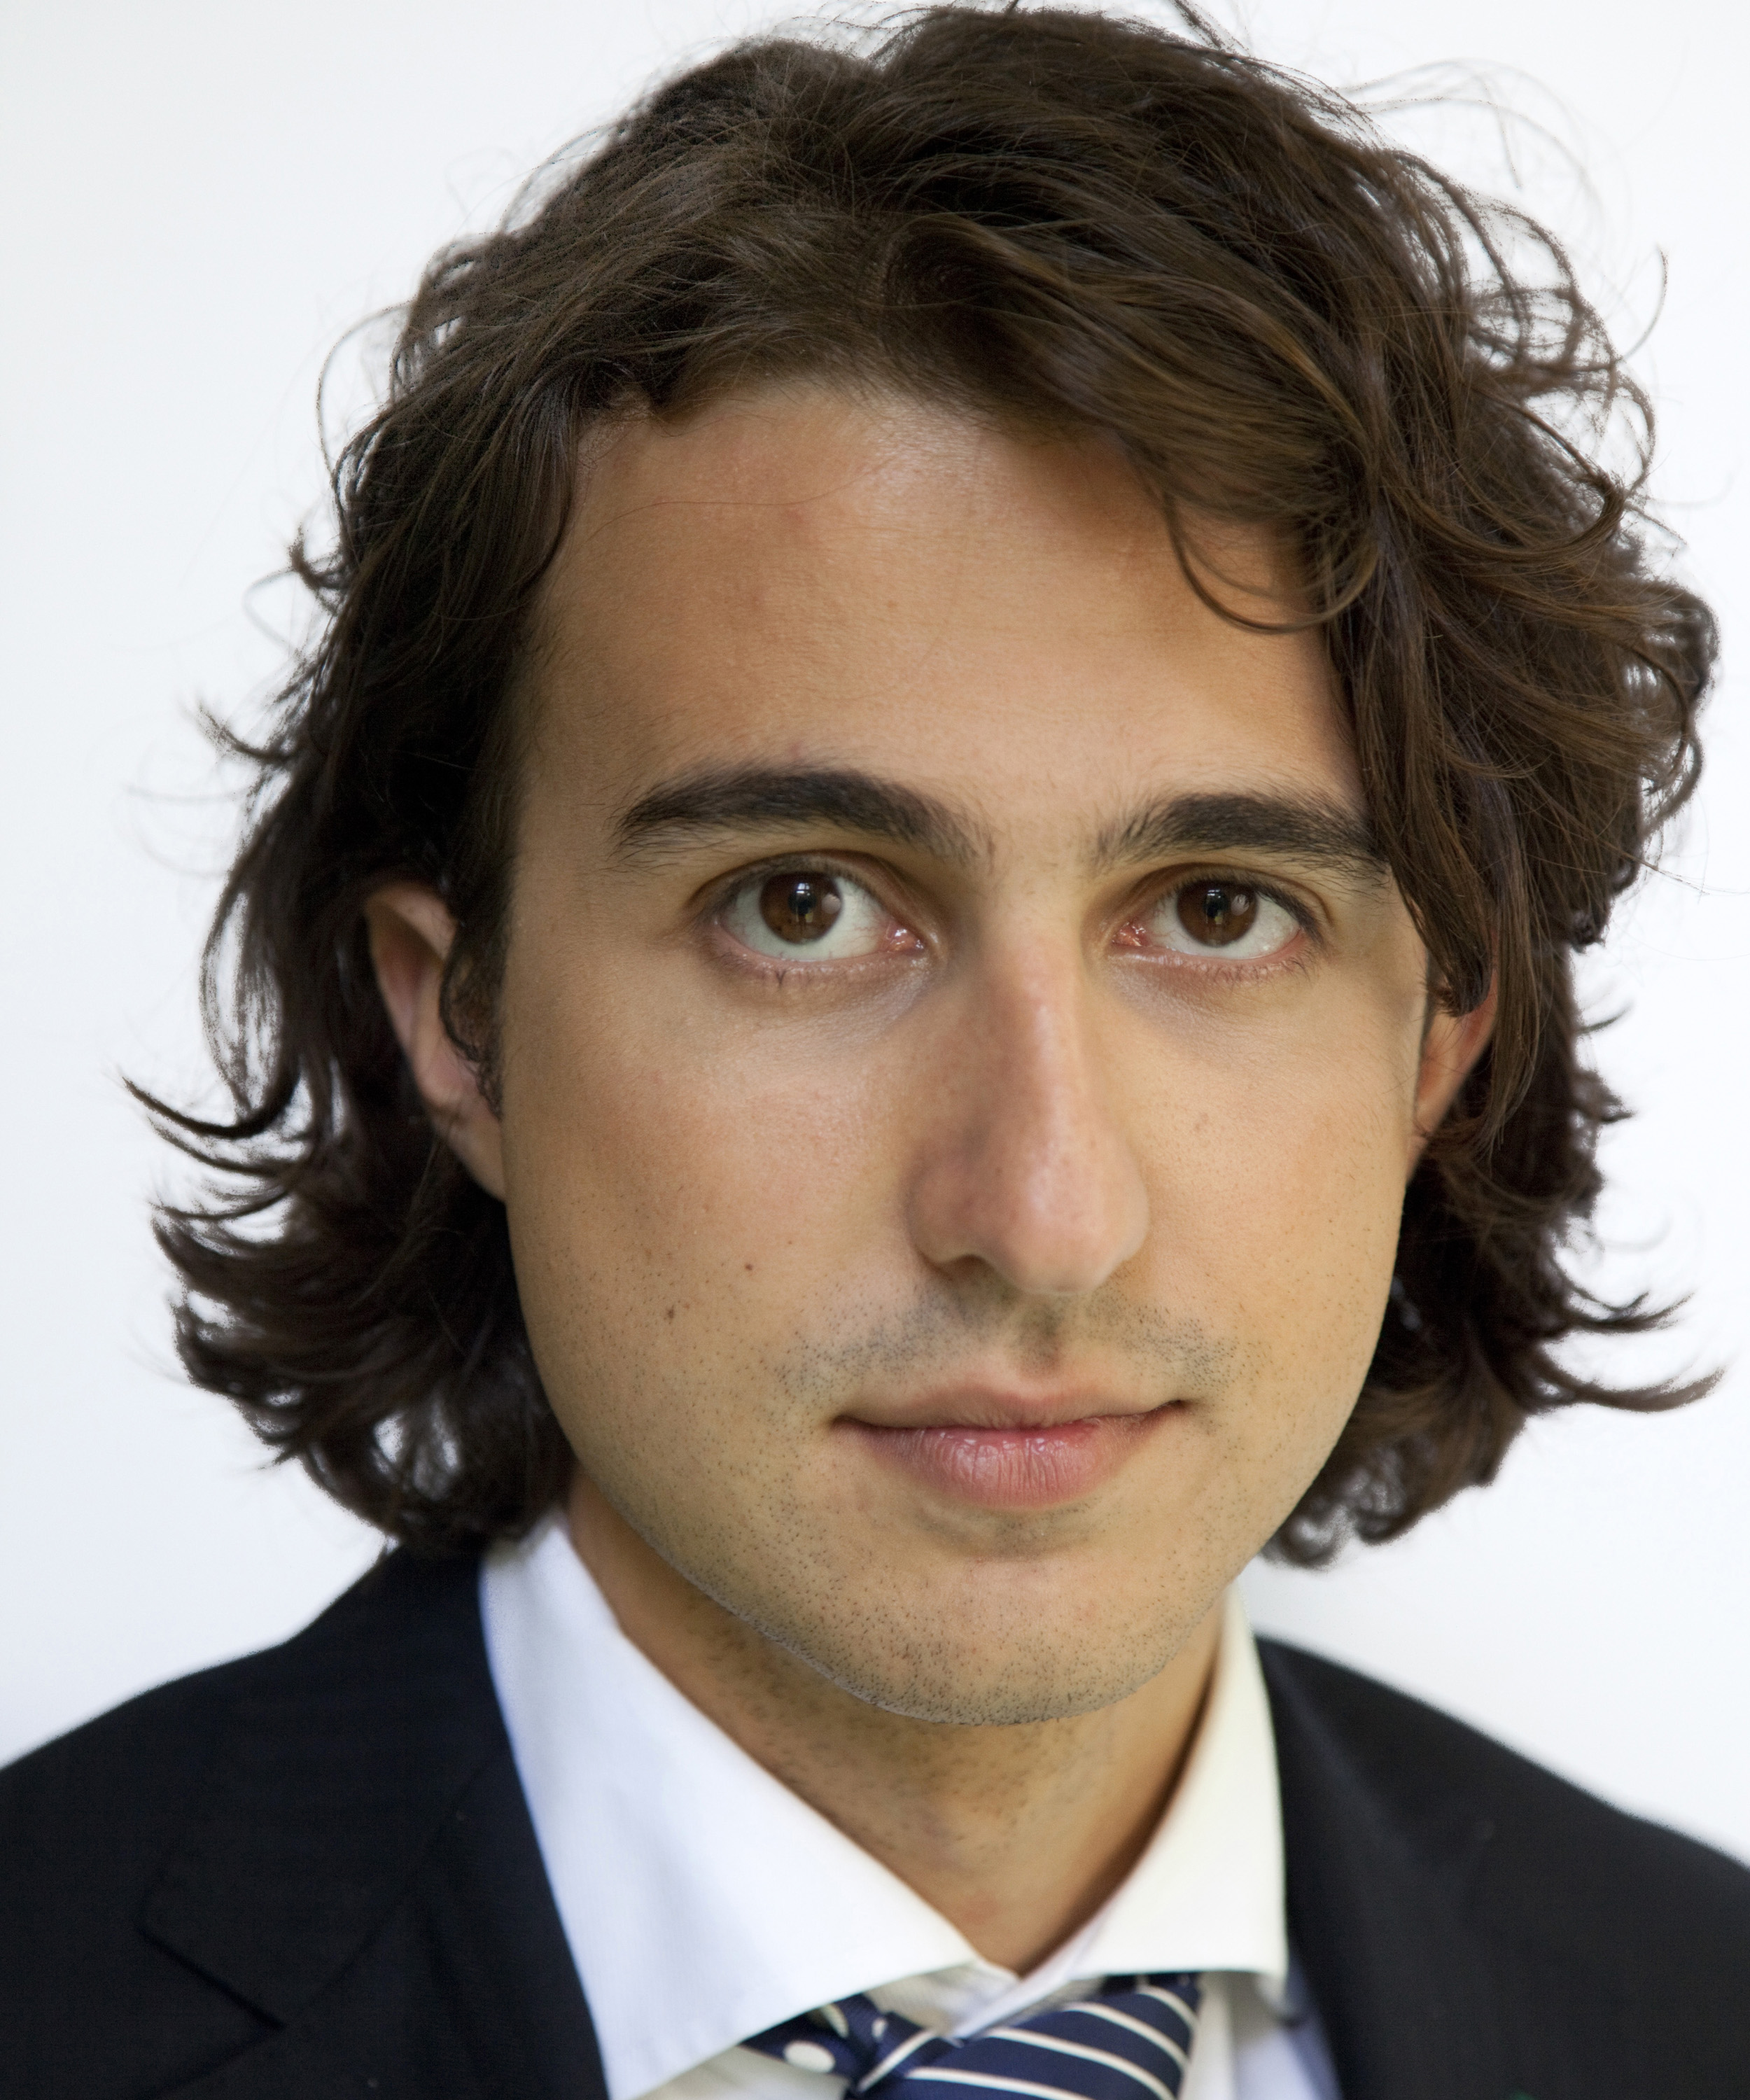 The 32-year old son of father (?) and mother(?) Jesse Klaver in 2018 photo. Jesse Klaver earned a  million dollar salary - leaving the net worth at  million in 2018